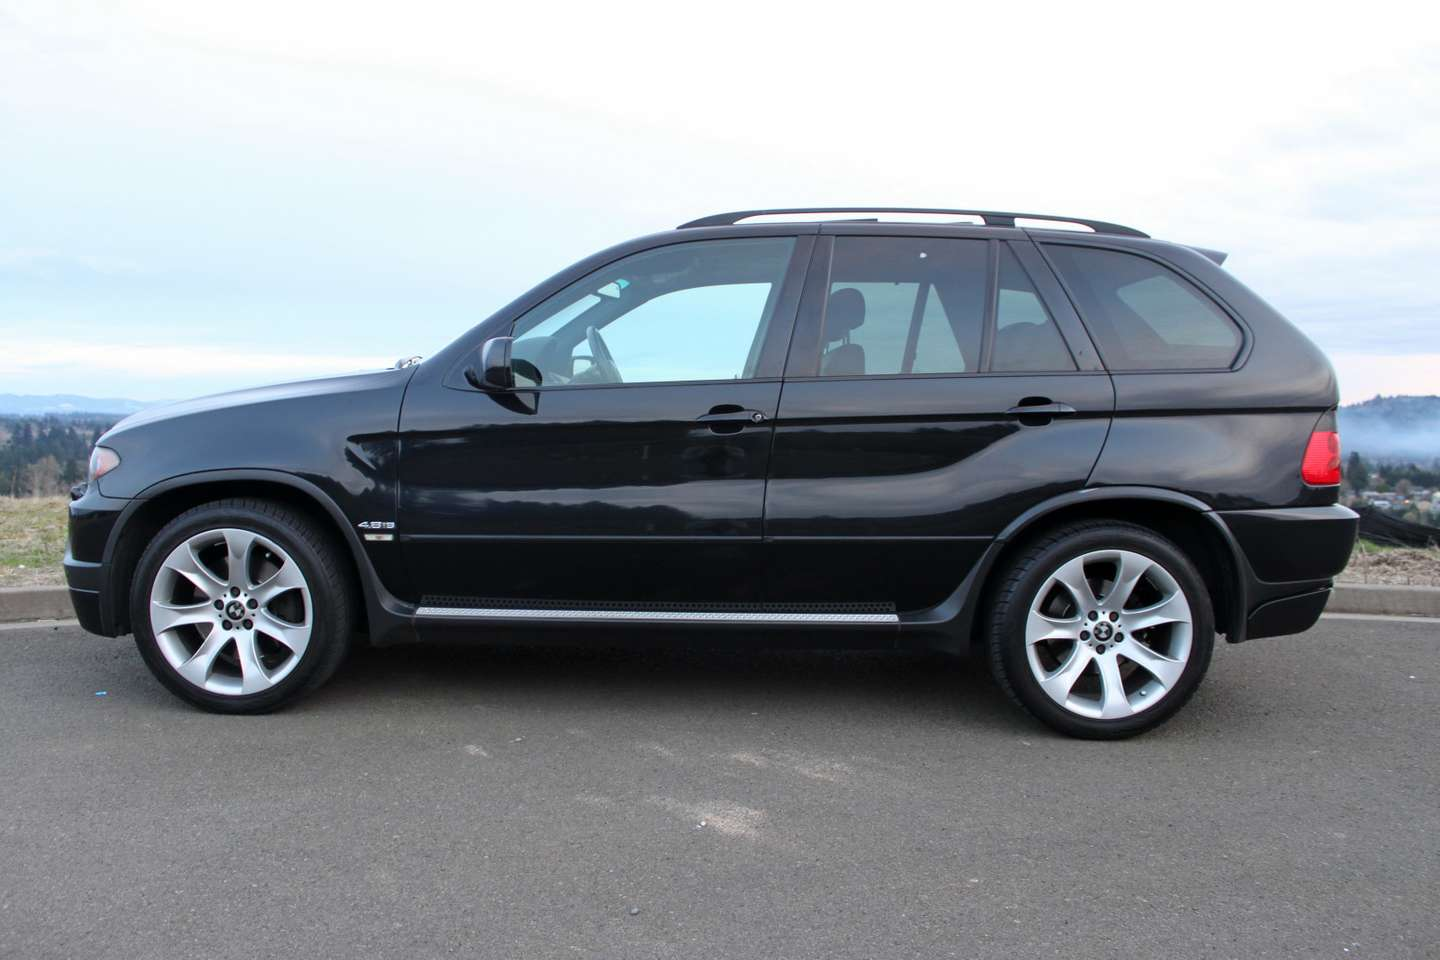 2005 bmw x5. Black Bedroom Furniture Sets. Home Design Ideas